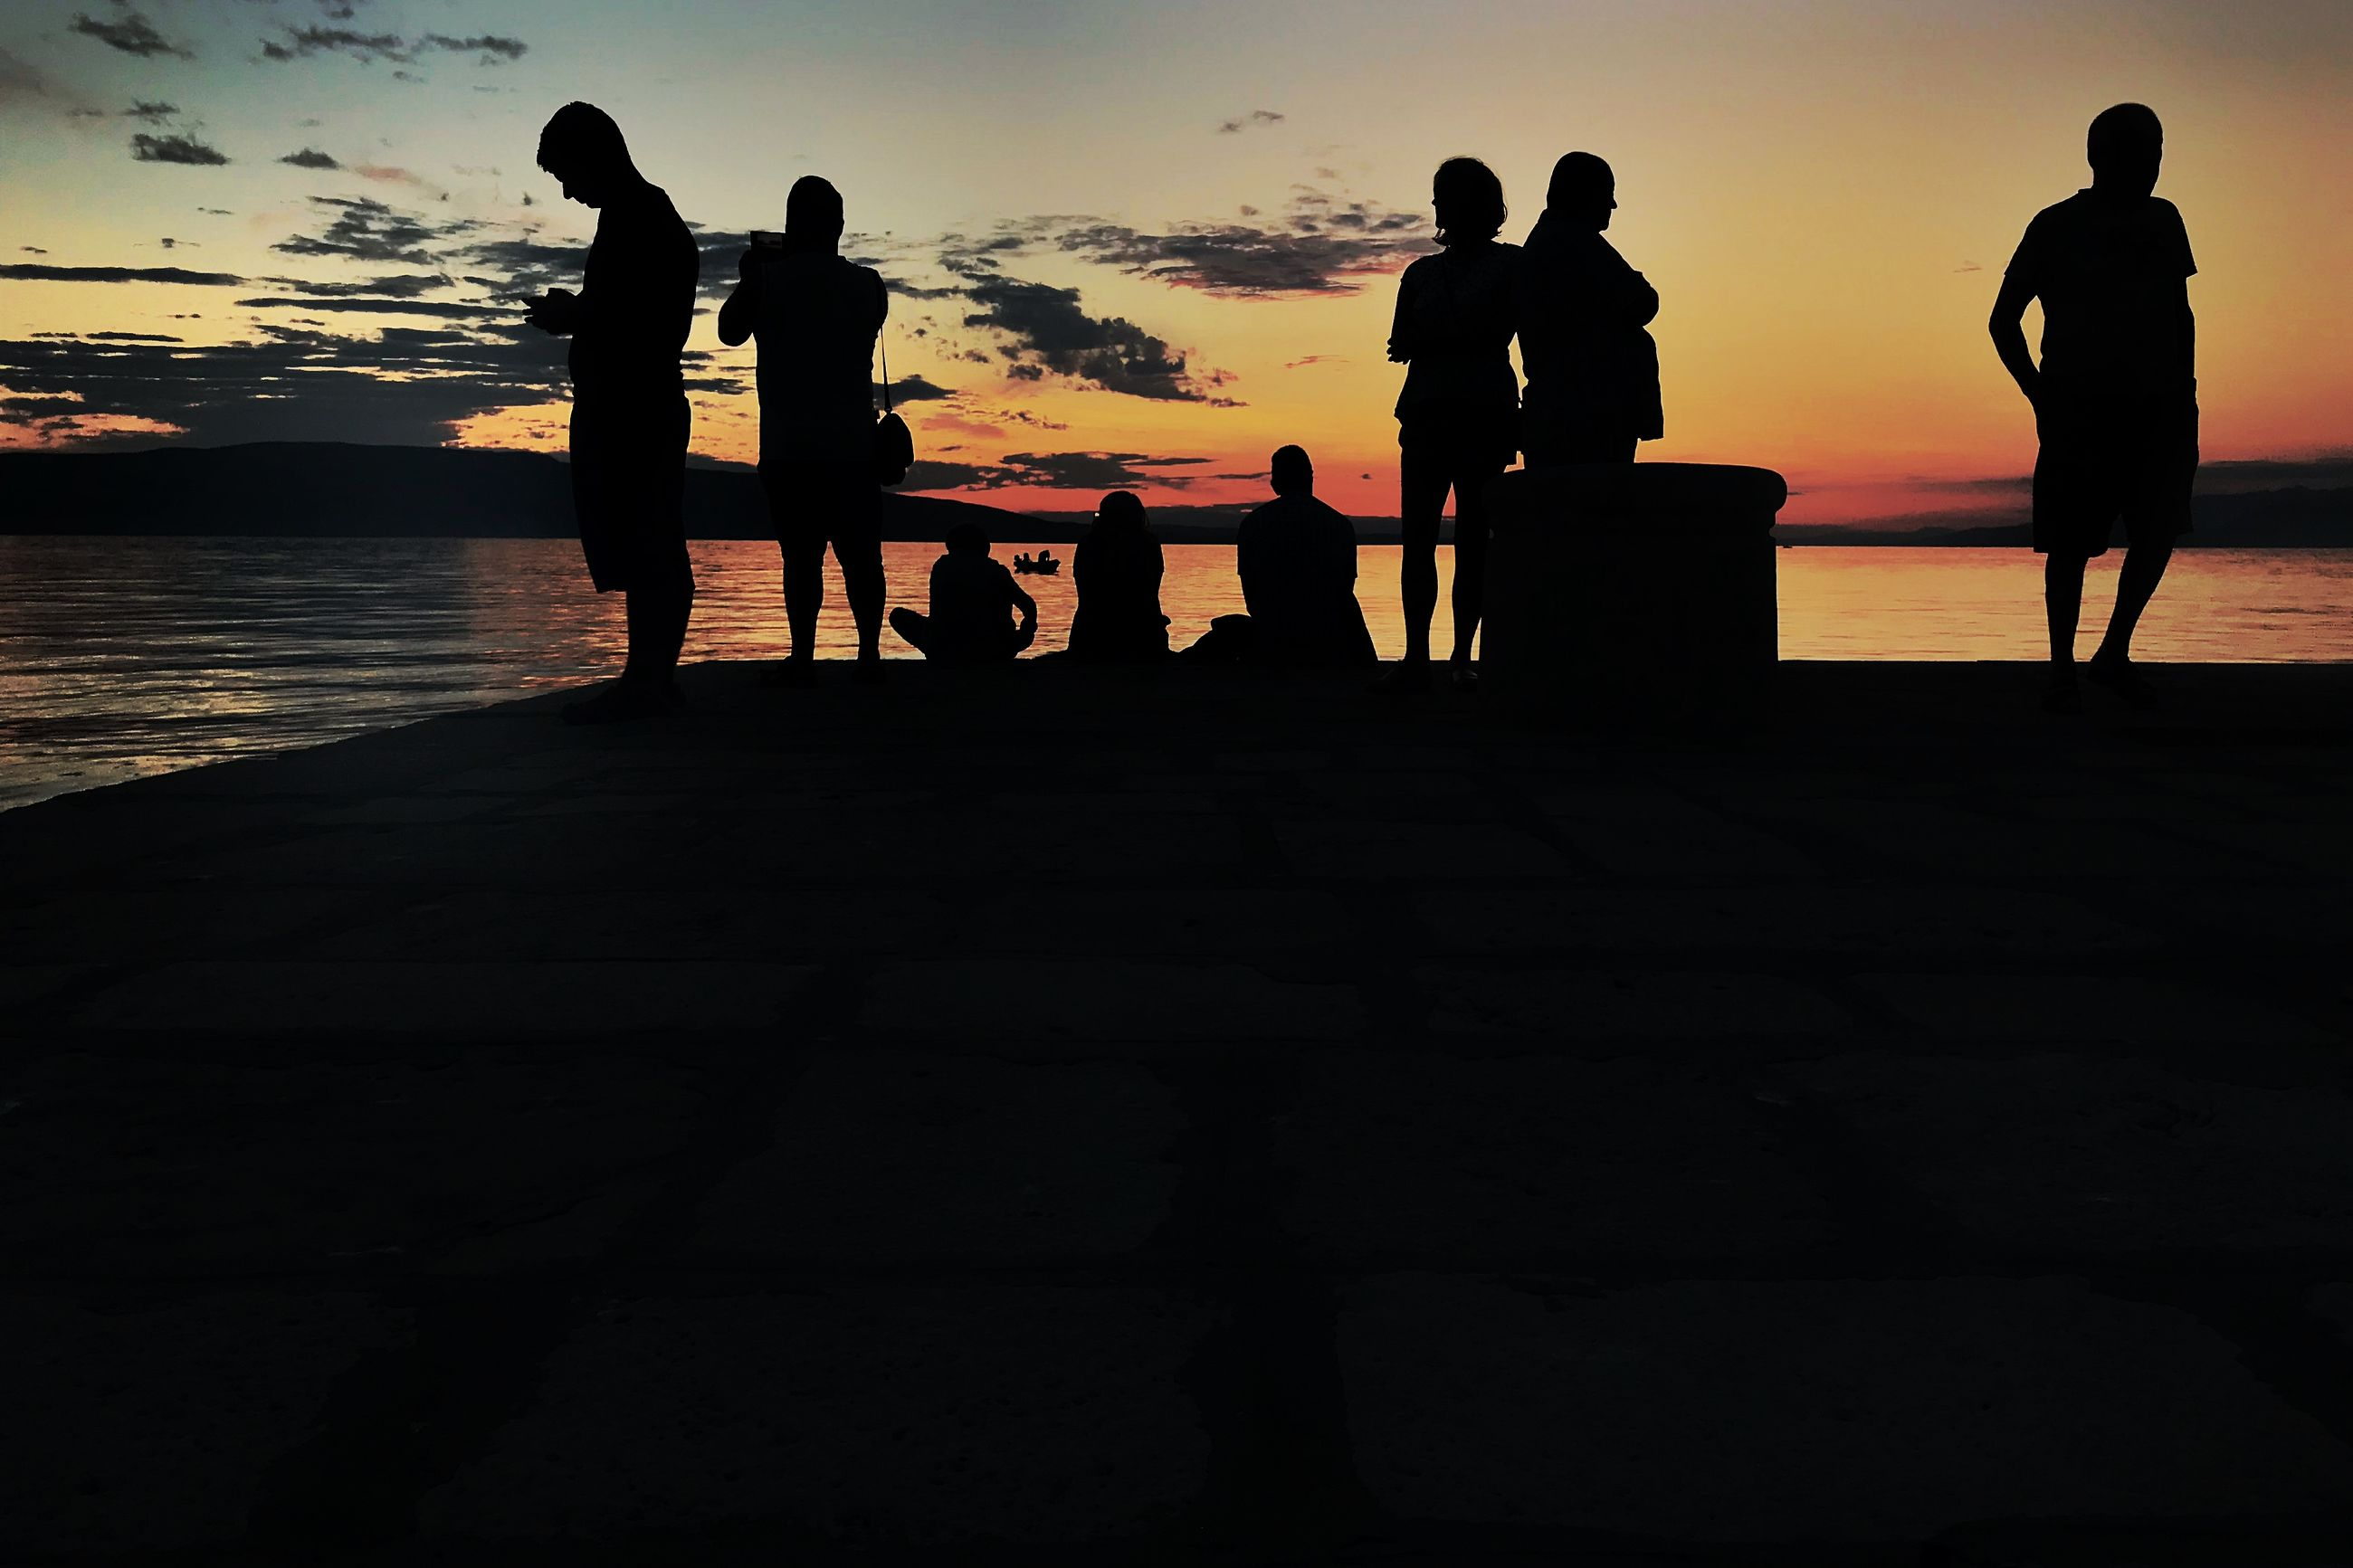 silhouette, sunset, water, sky, group of people, sea, beach, real people, beauty in nature, scenics - nature, lifestyles, land, leisure activity, men, nature, people, standing, orange color, women, horizon over water, outdoors